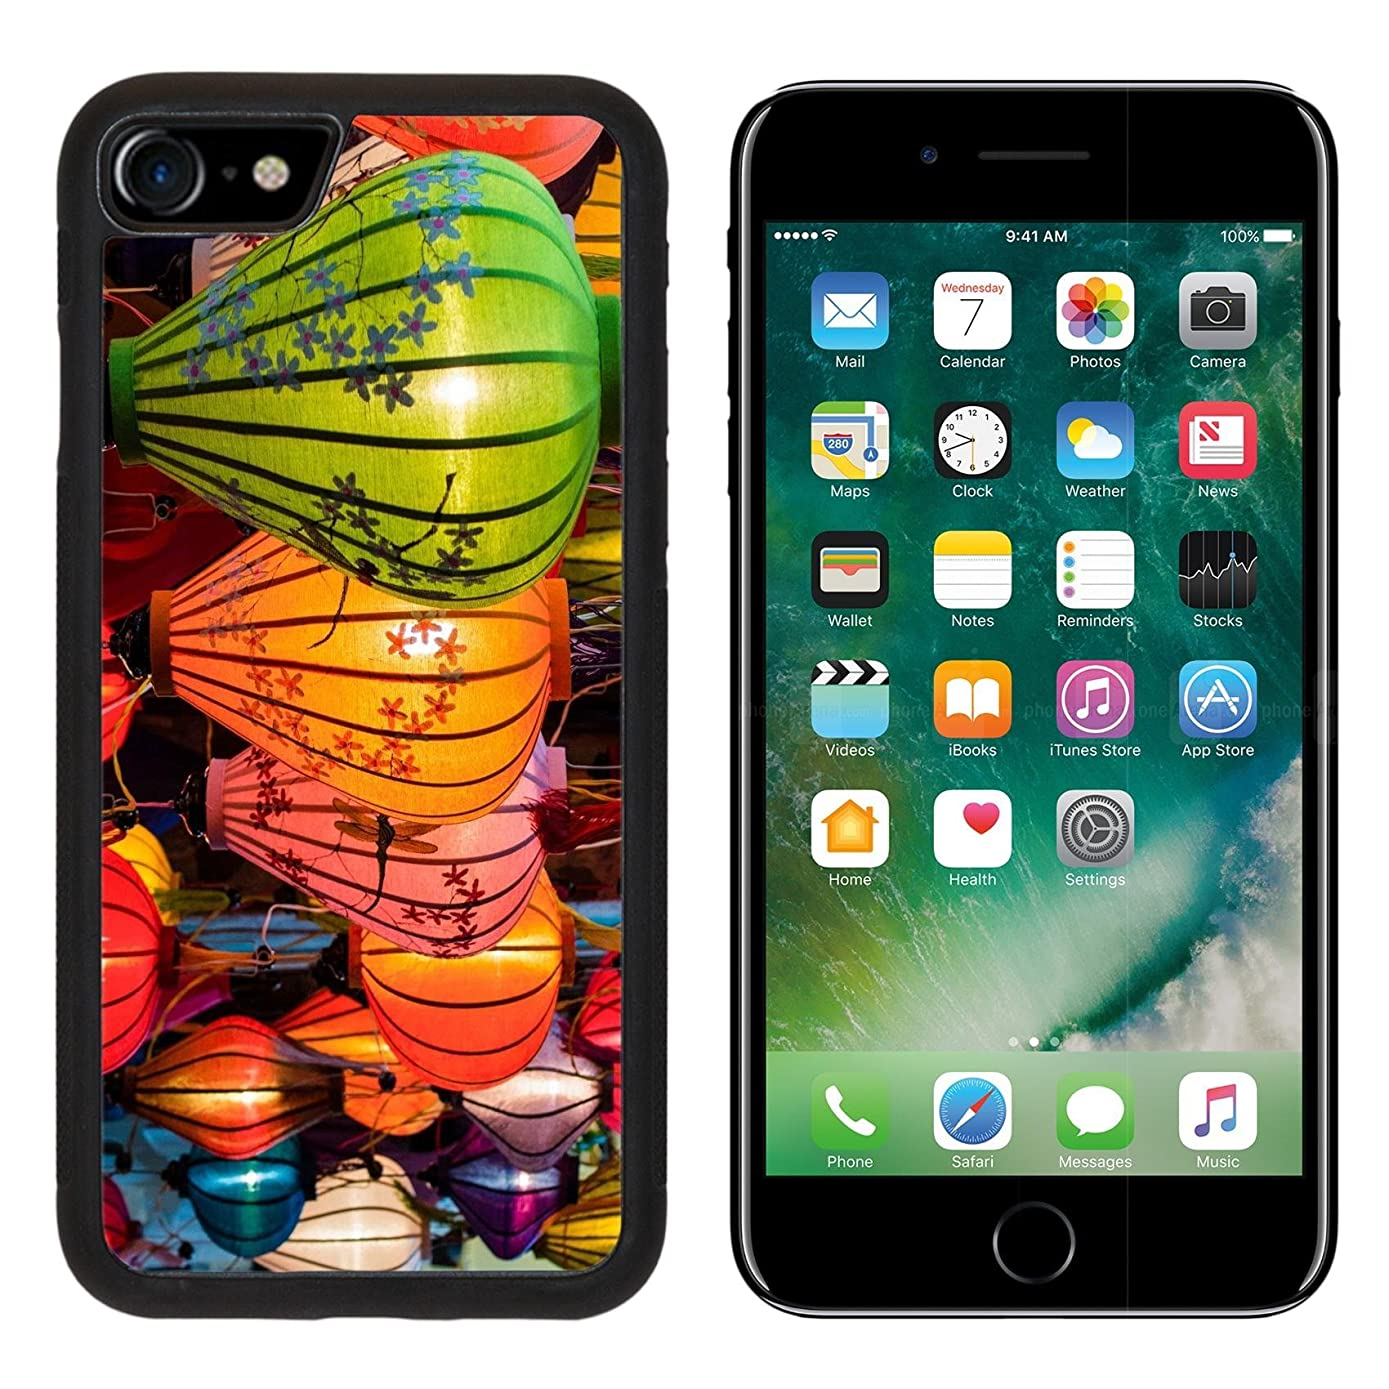 MSD iPhone 7 Case and iPhone 8 Case Protective Silicone Bumper Shockproof Anti-Scratch Resistant Hard Cover IMAGE ID: 31089698 Traditional lamps in Old Town Hoi An Central Vietnam